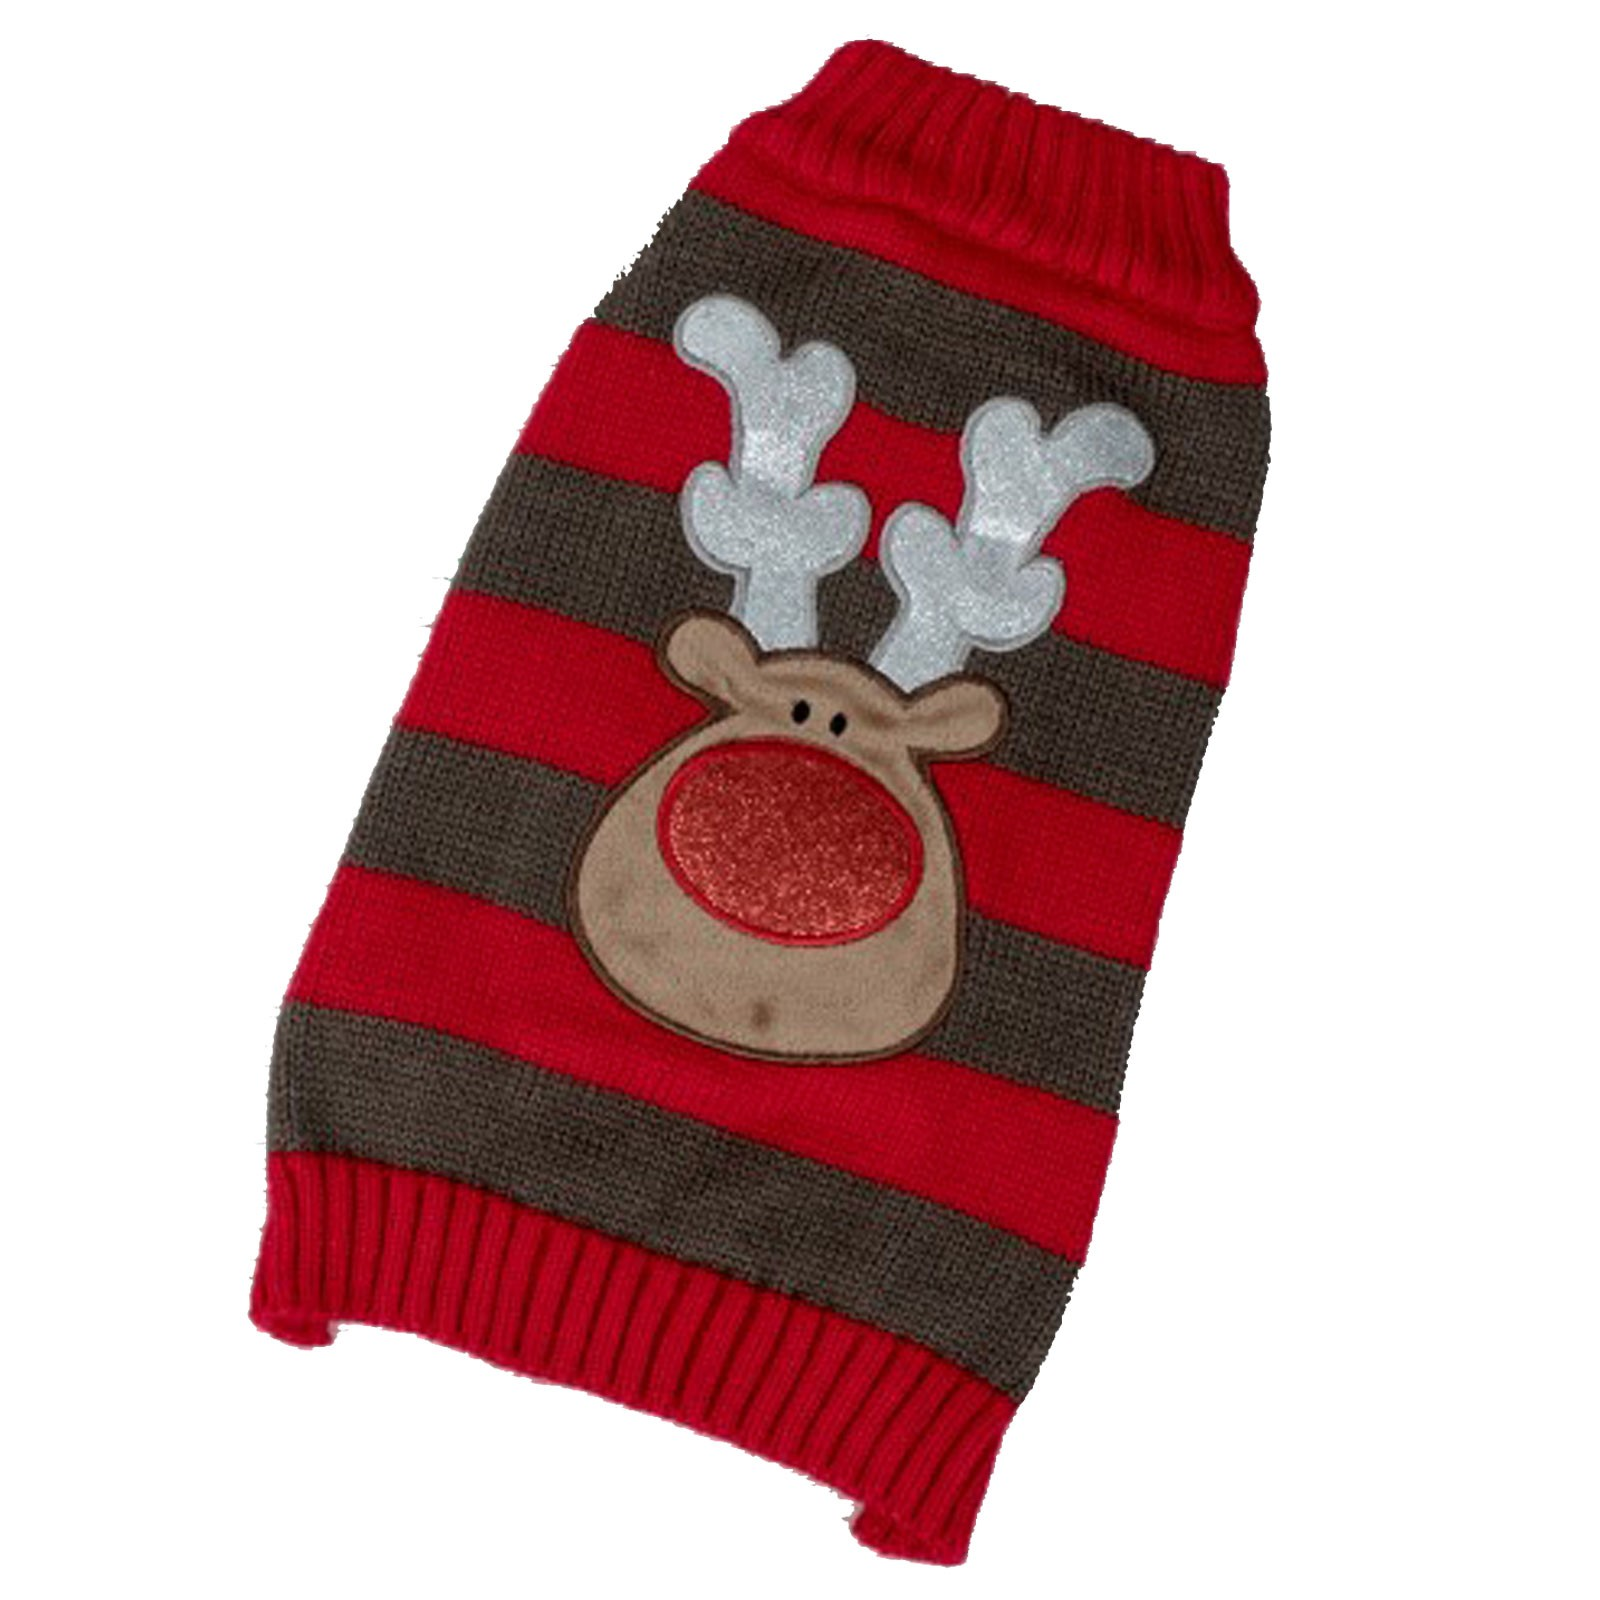 PETFACE 80205 DOG SWEATER MEDIUM 35CM RED/BROWN STRIPE REINDEER PRINT NEW